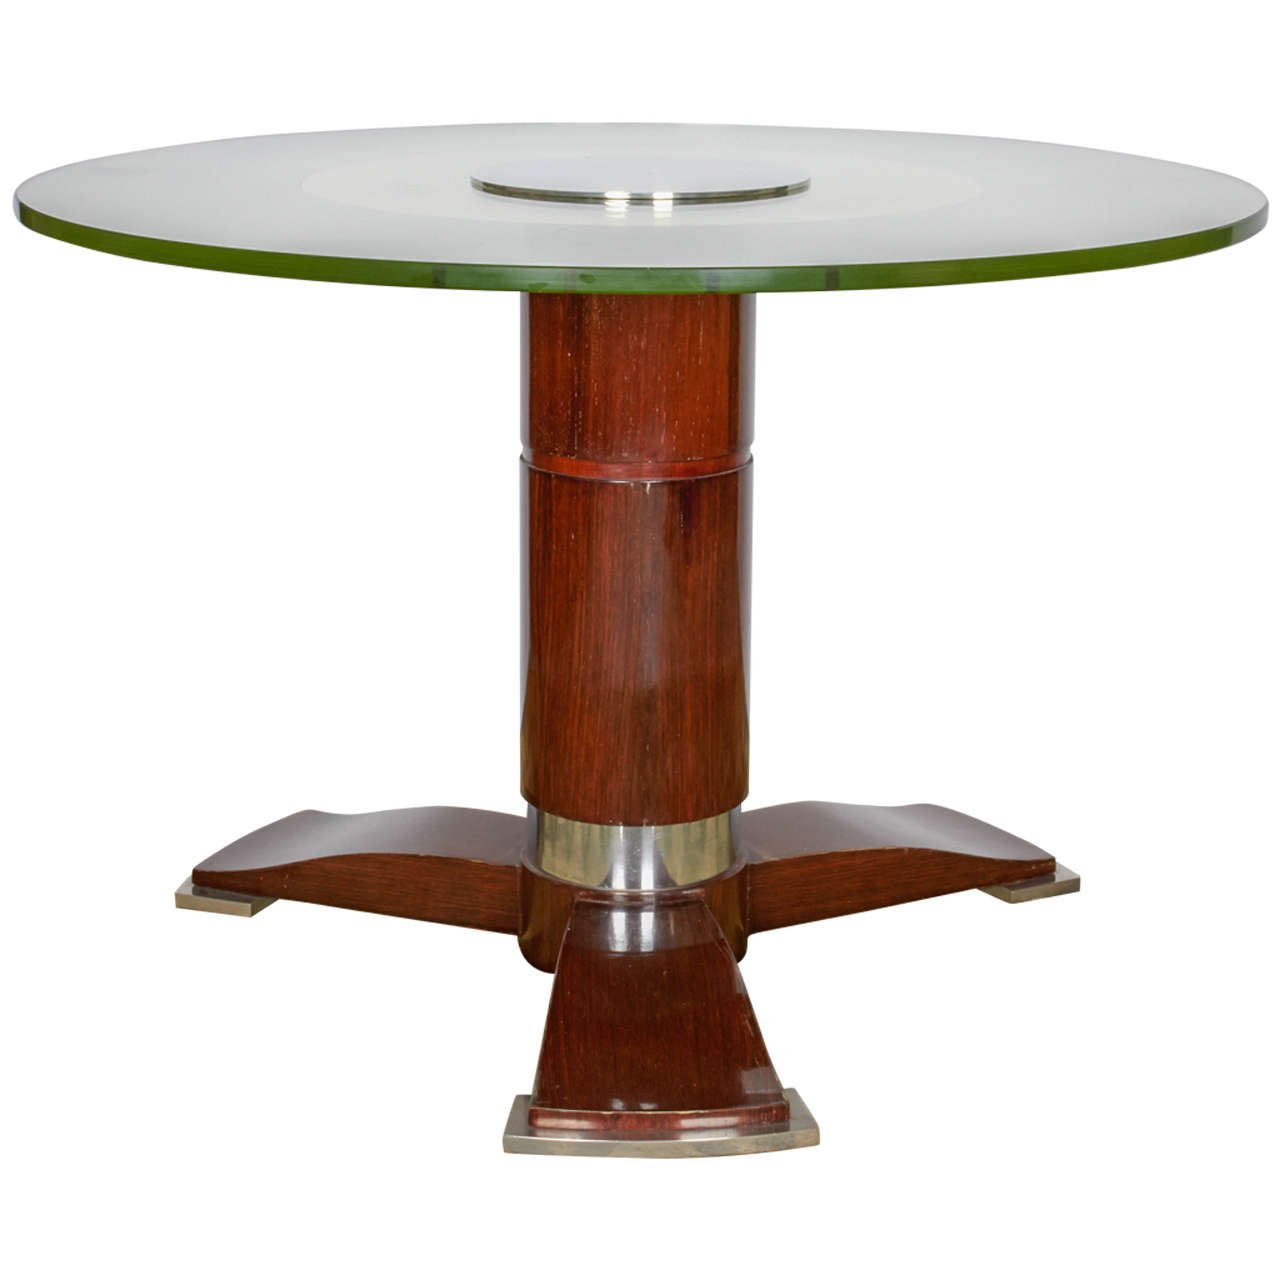 Round Coffee Table Pair: Jules Leleu Low Round Table For Sale At 1stdibs